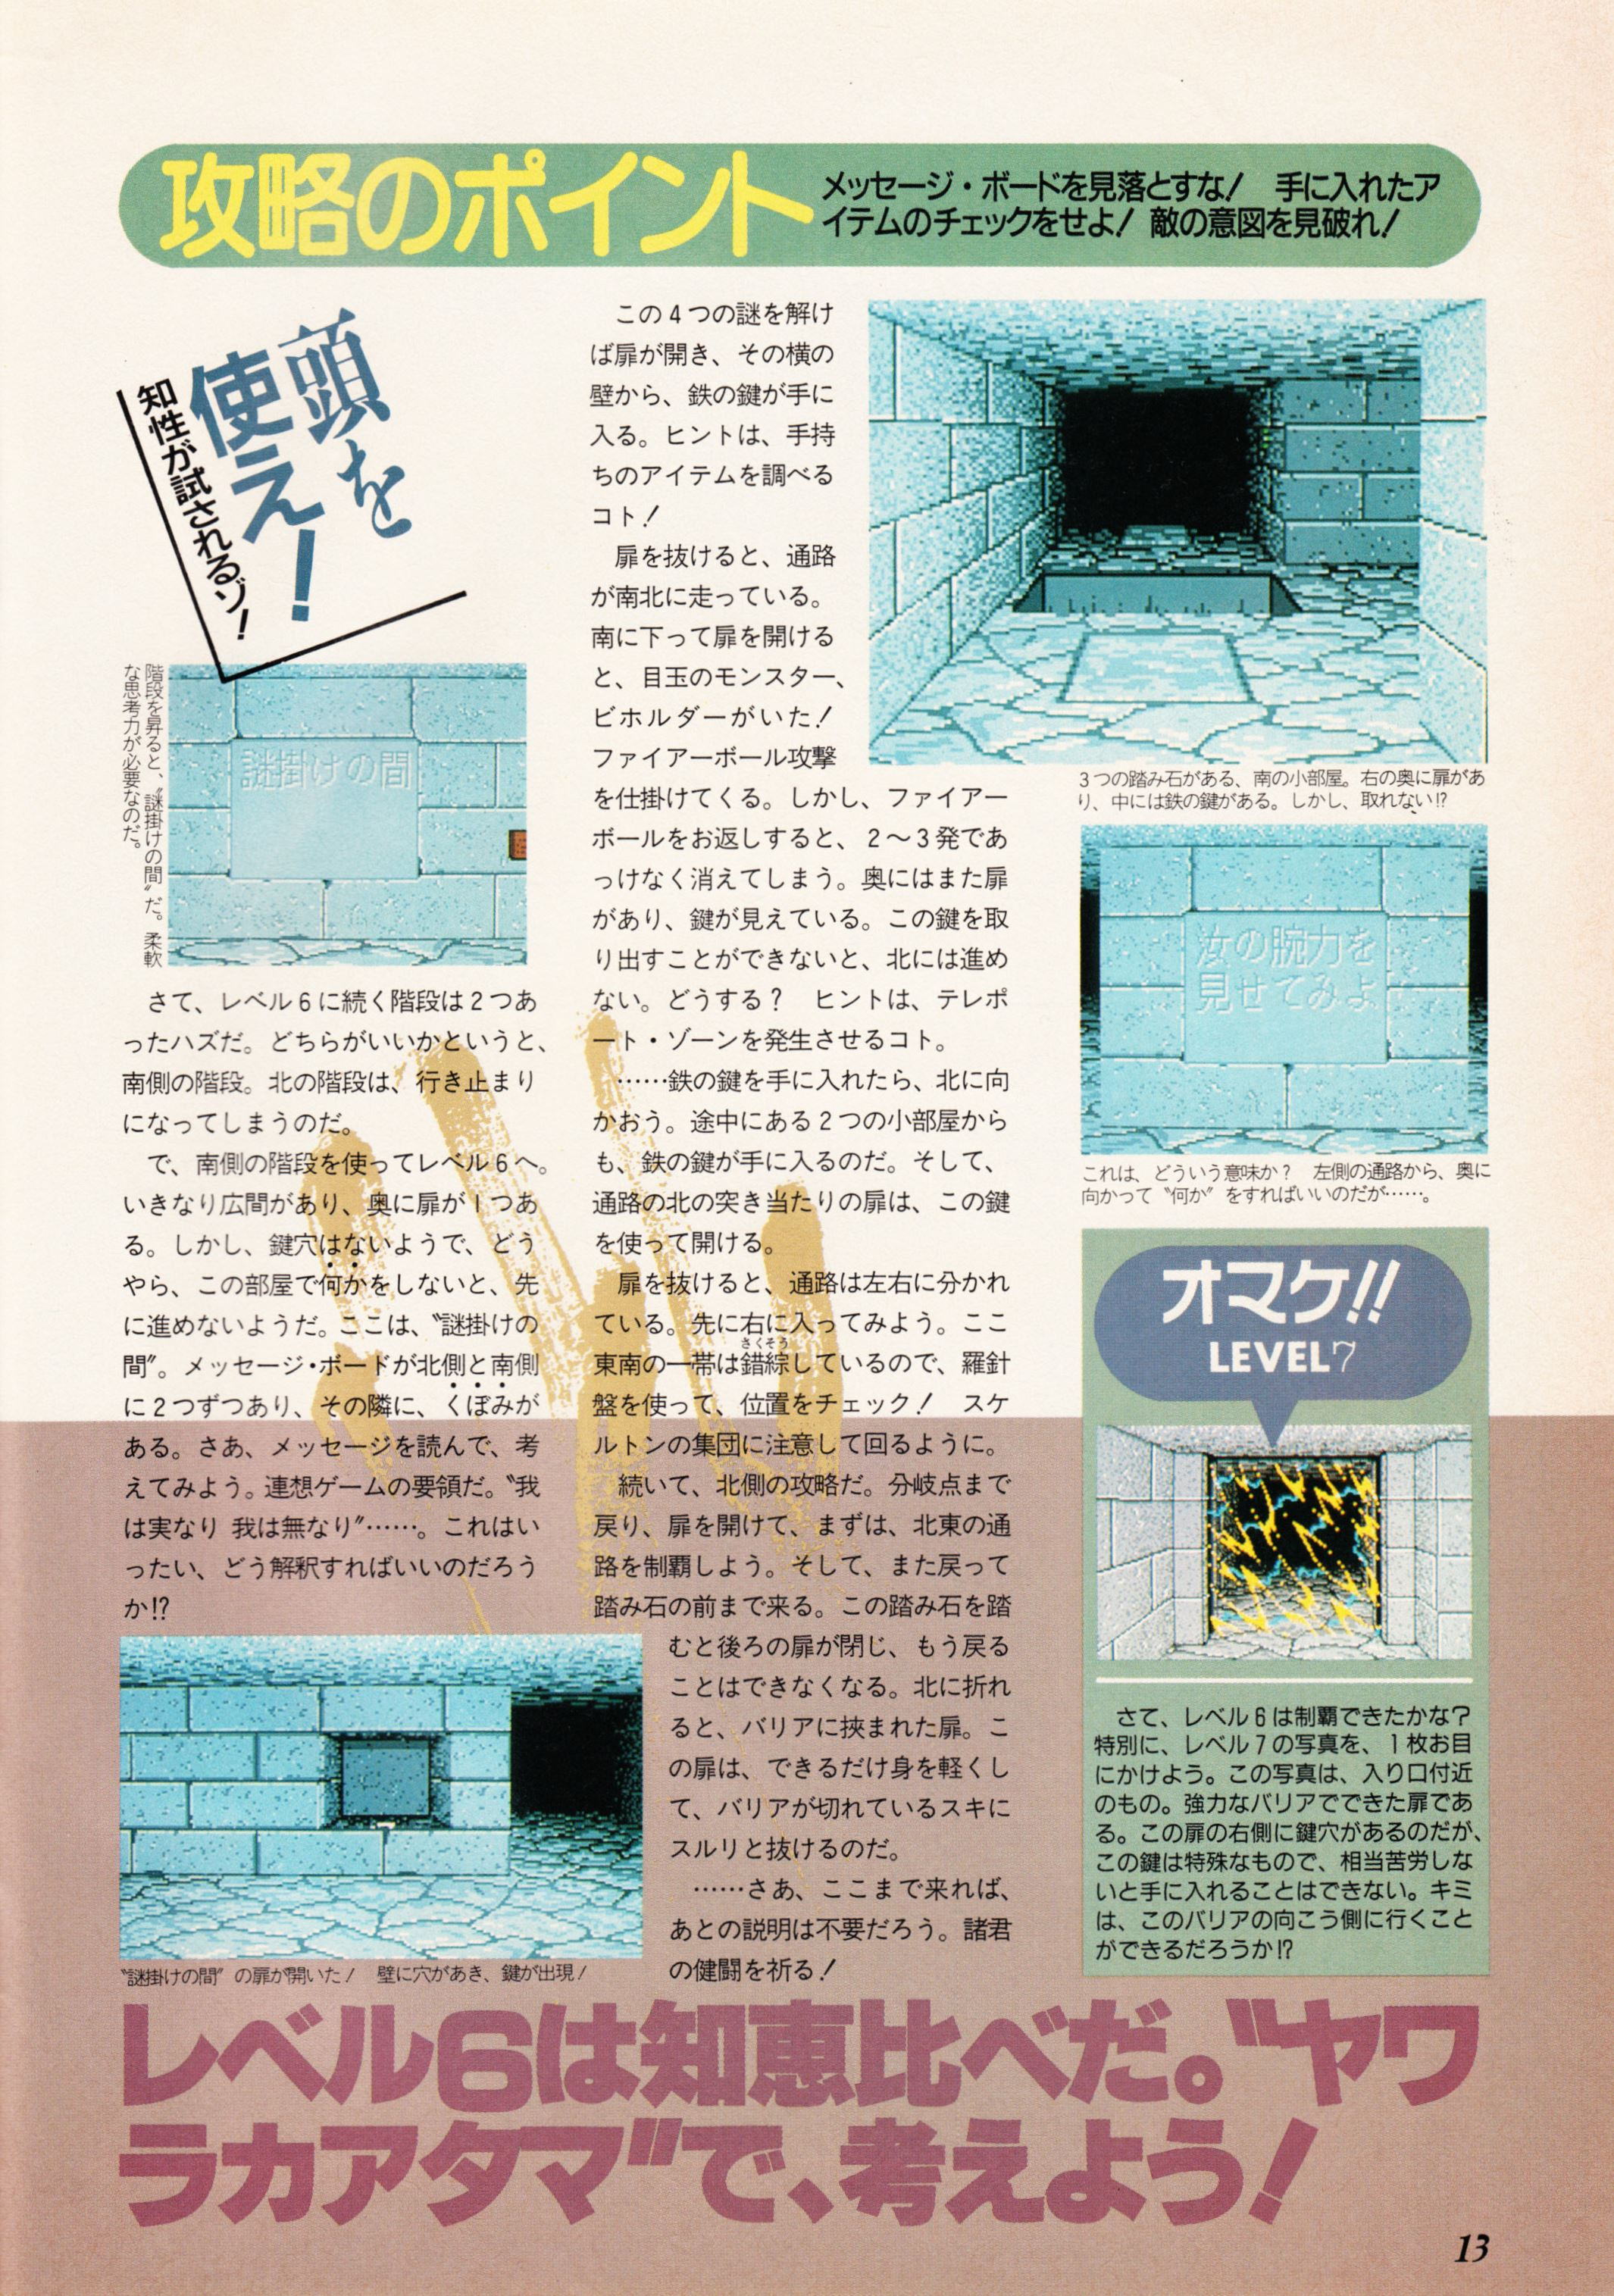 Supplement - Dungeon Master Companion Manual Guide published in Japanese magazine 'Popcom', Vol 4 No 1 01 April 1990, Page 15